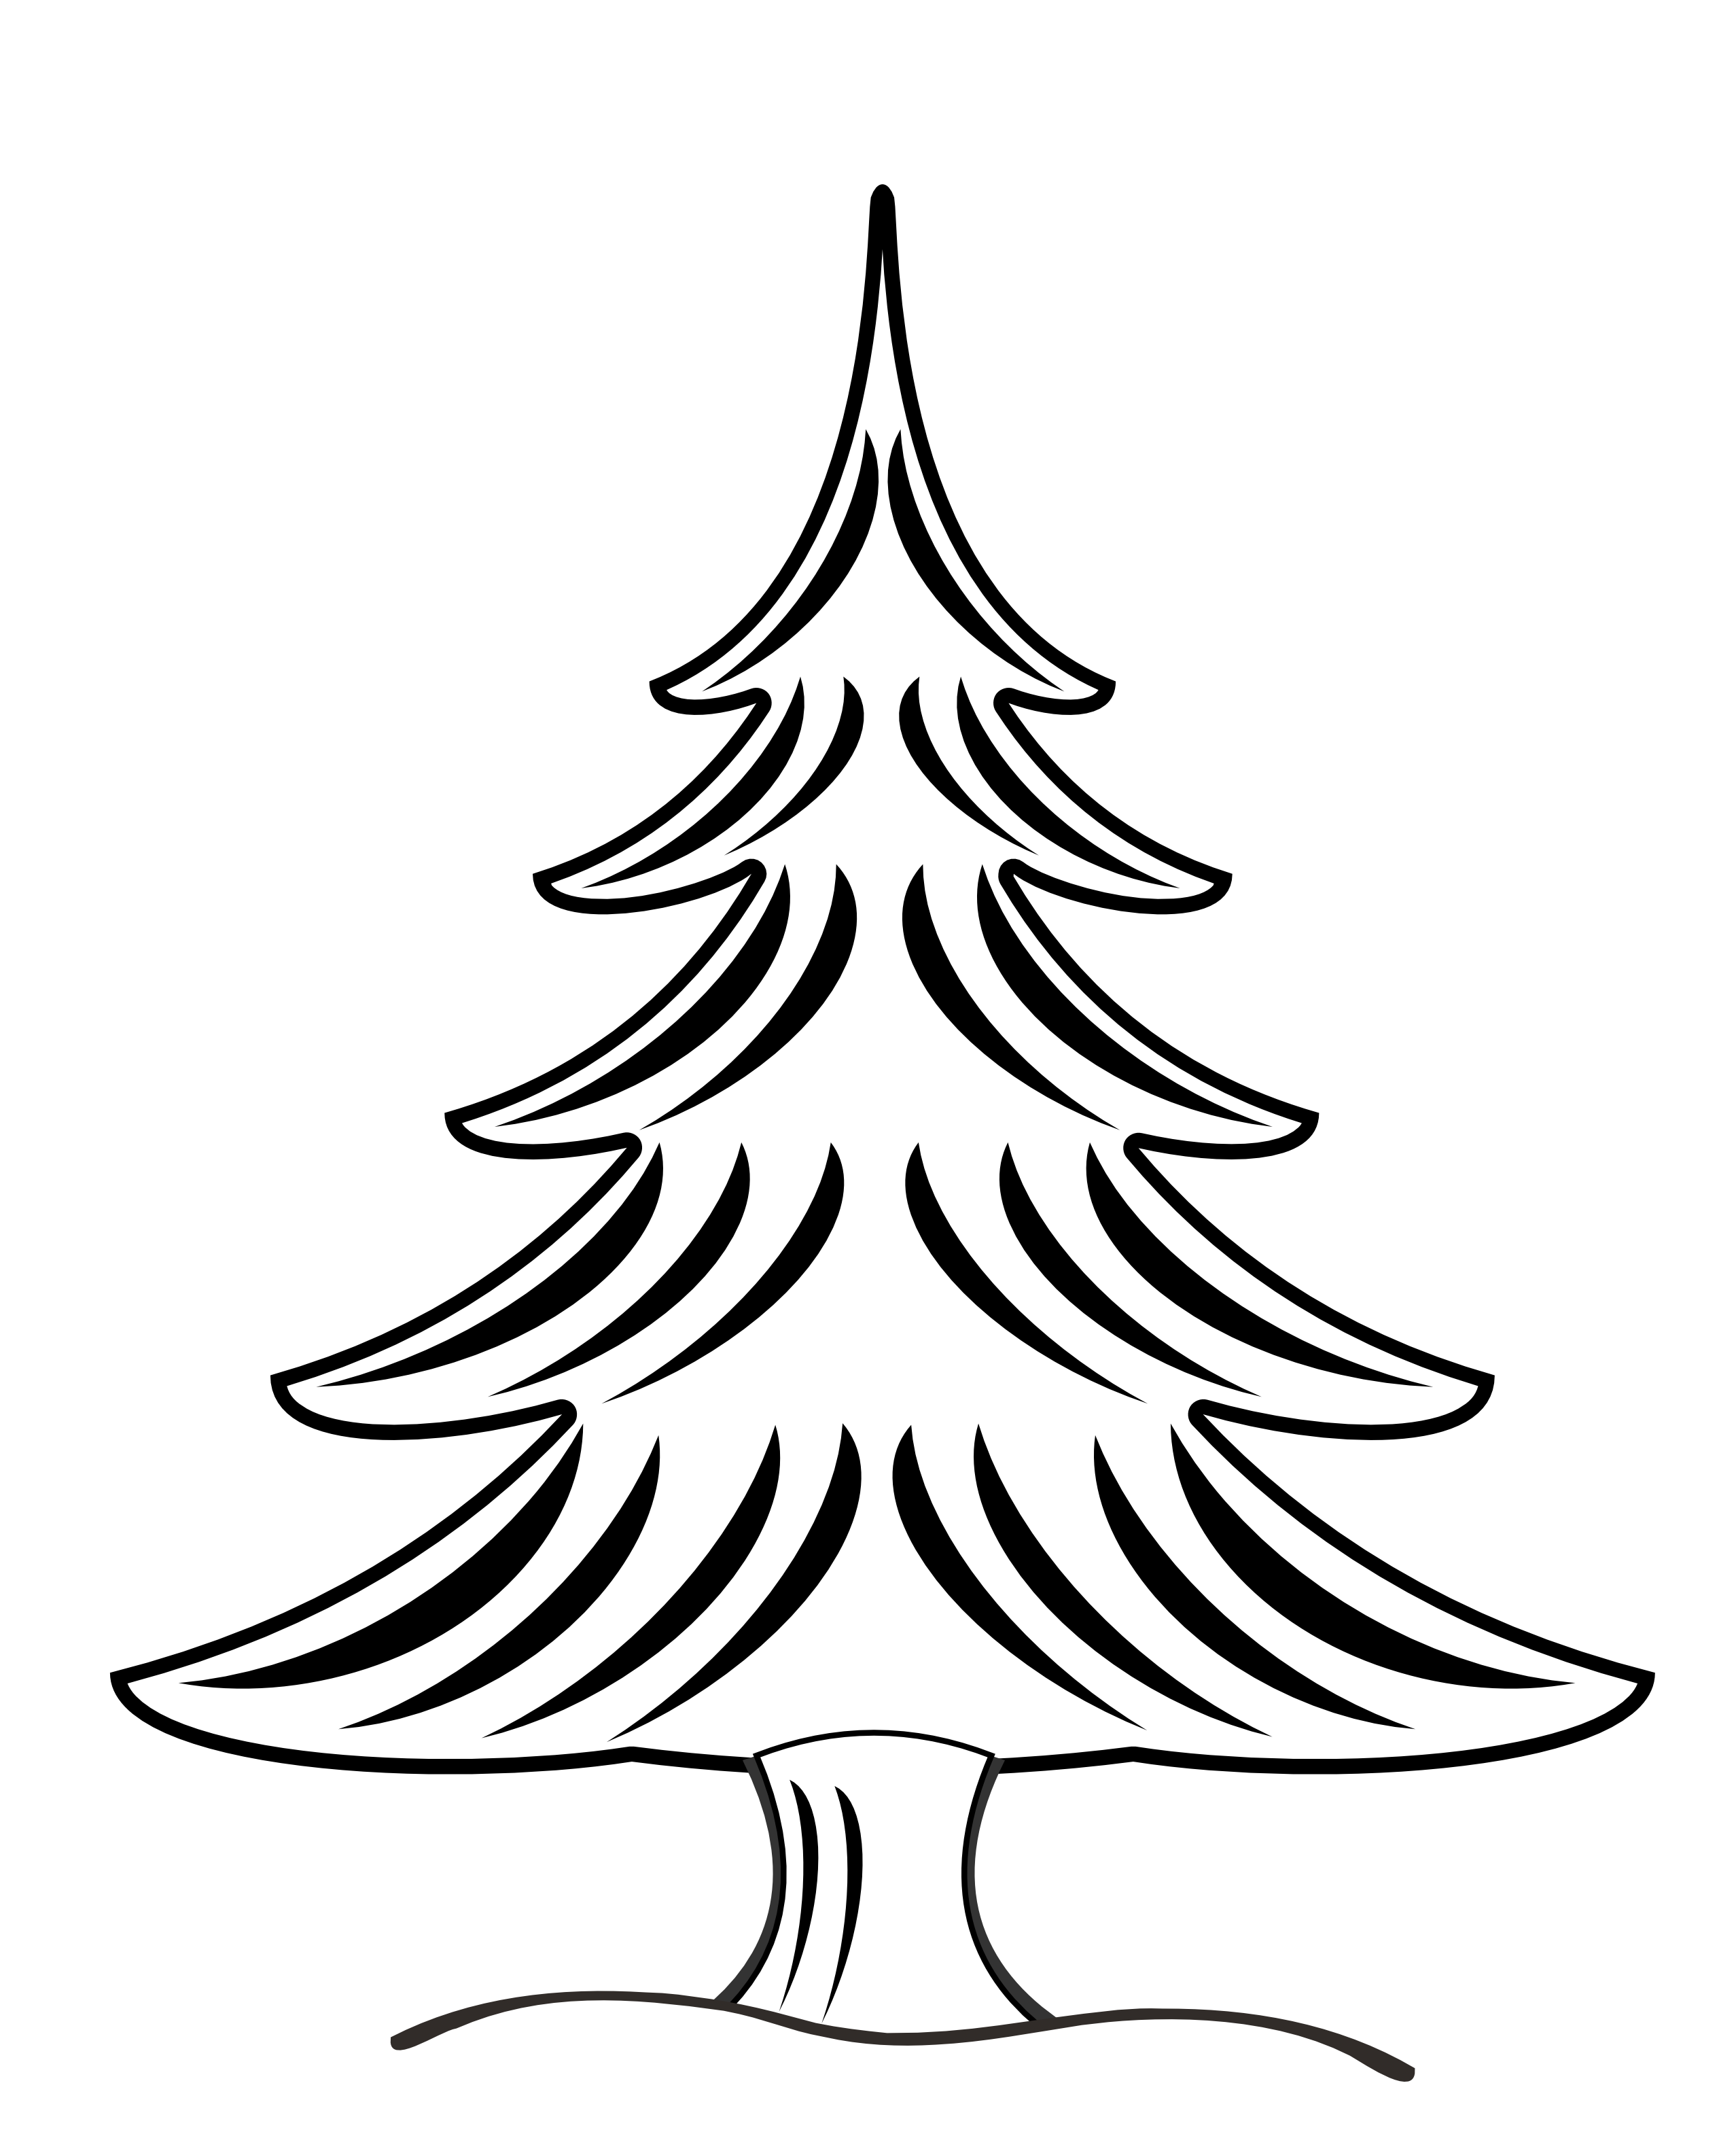 Free black and white. Christmas tree vector png